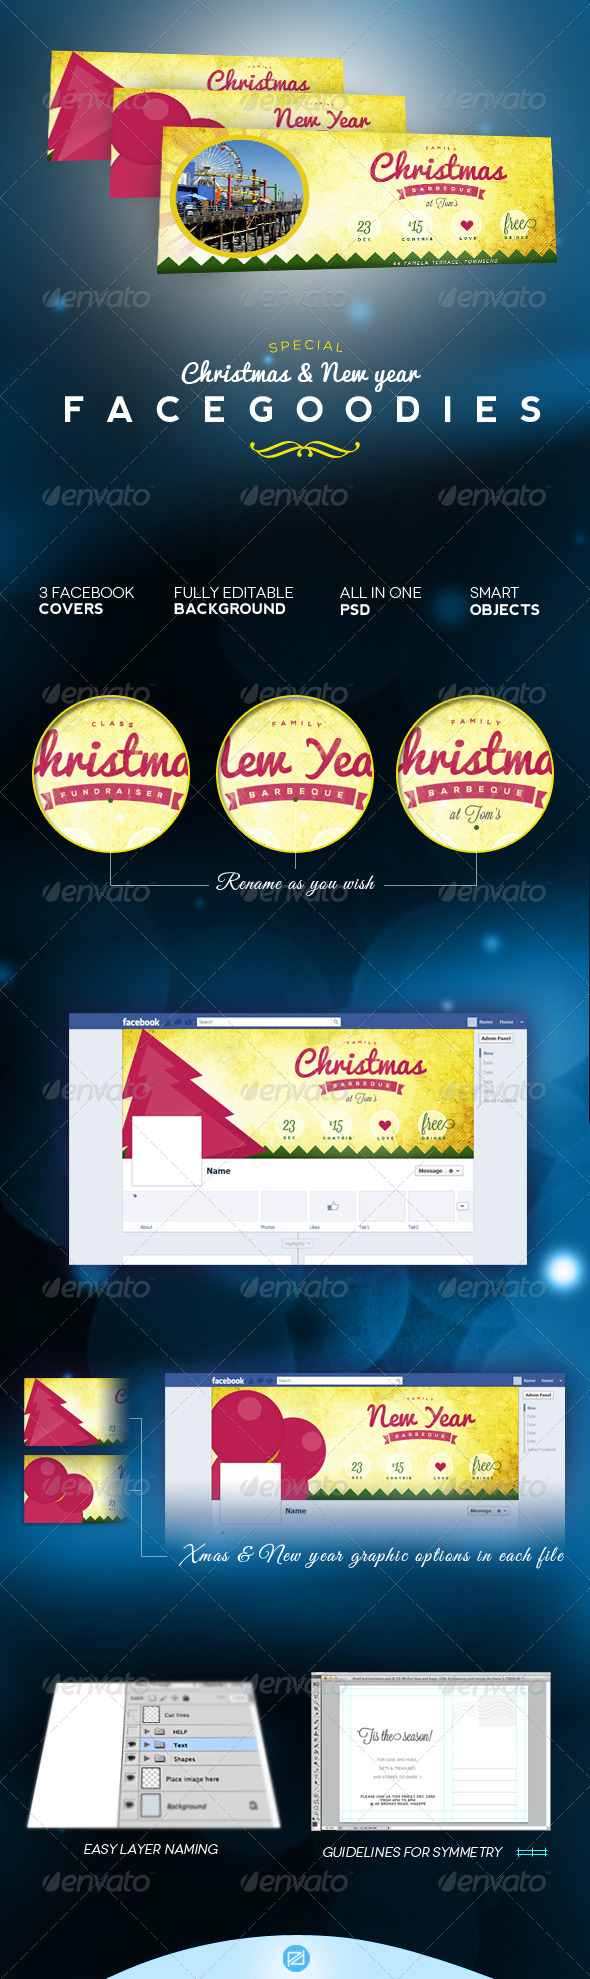 Christmas & New Year's Facebook Event Cover - Facebook Timeline Covers Social Media